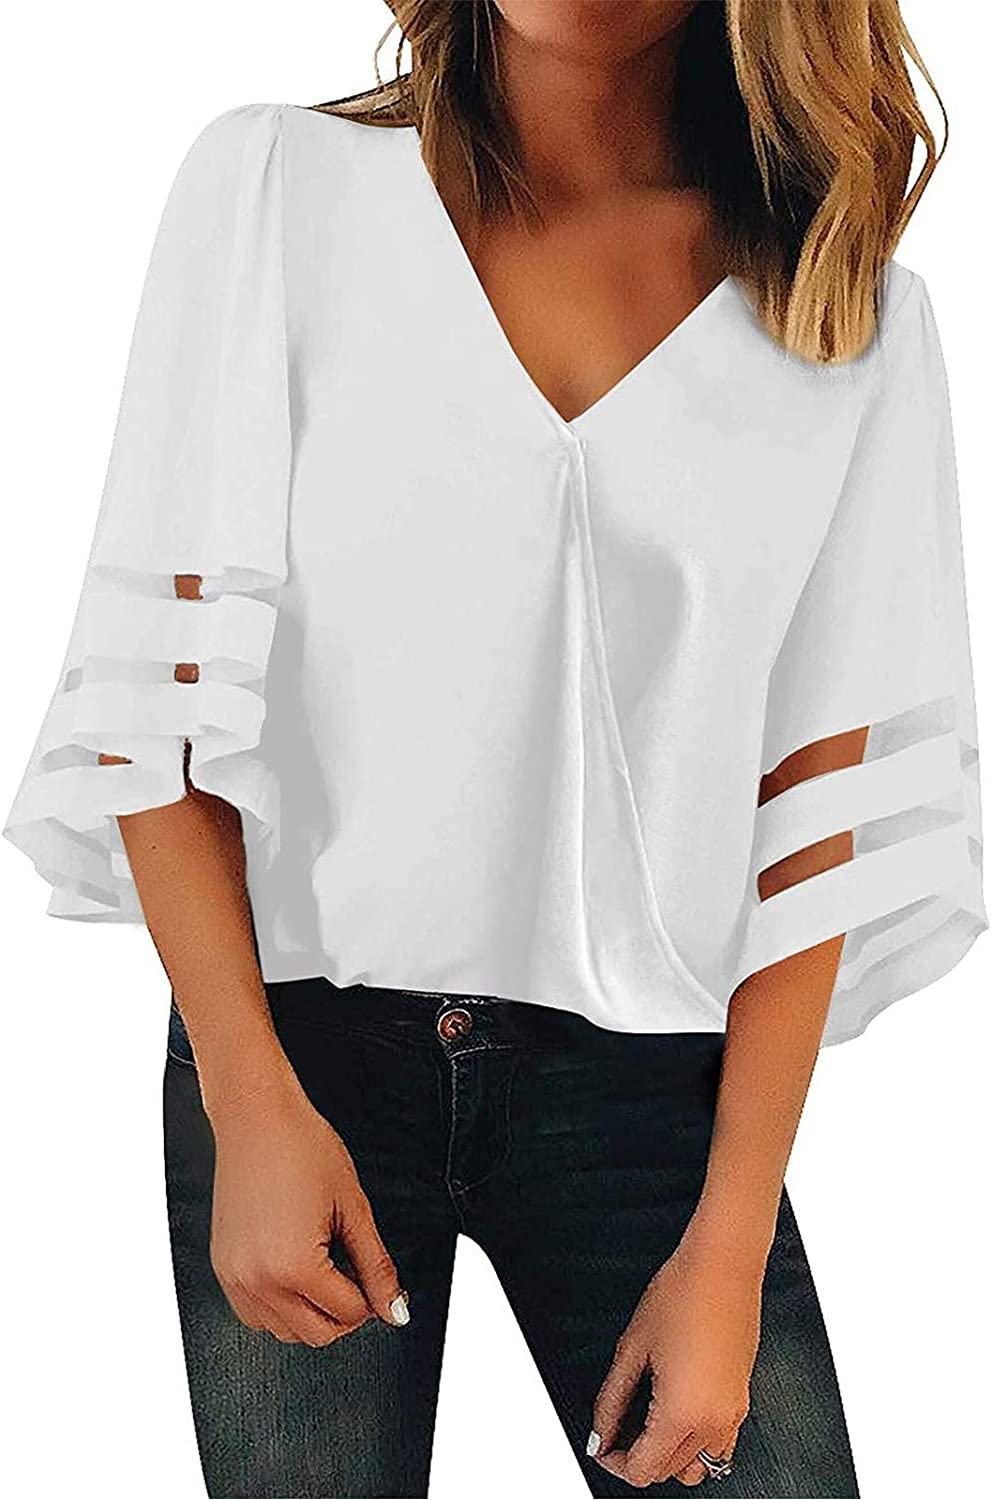 Off the Shoulder Tops for Women 3/4 Bell Sleeve V Neck Mesh Patchwork Blouse Casual Loose Tunic Shirt American Flag Top